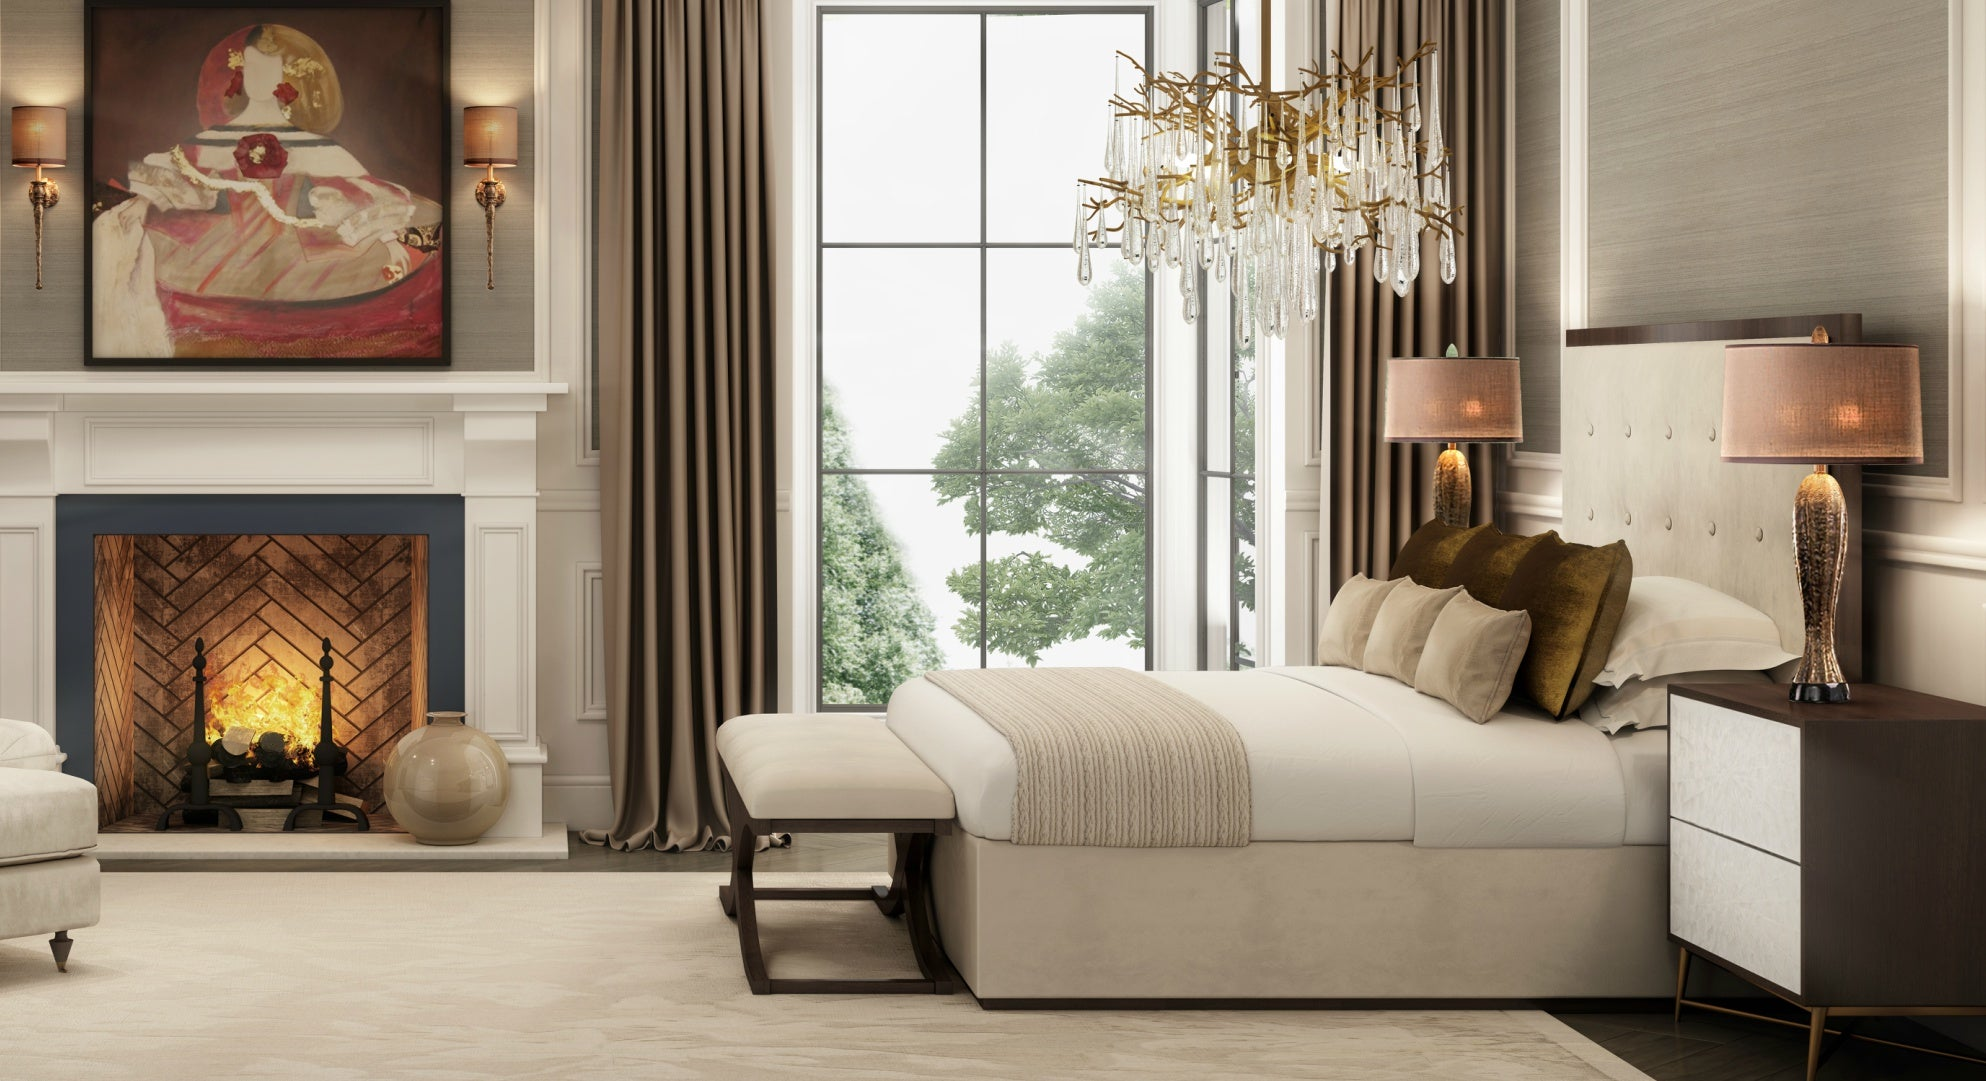 Autumn Winter 2019 Collection | Surrey Lookbook | Luxury Bedroom Design | LuxDeco.com